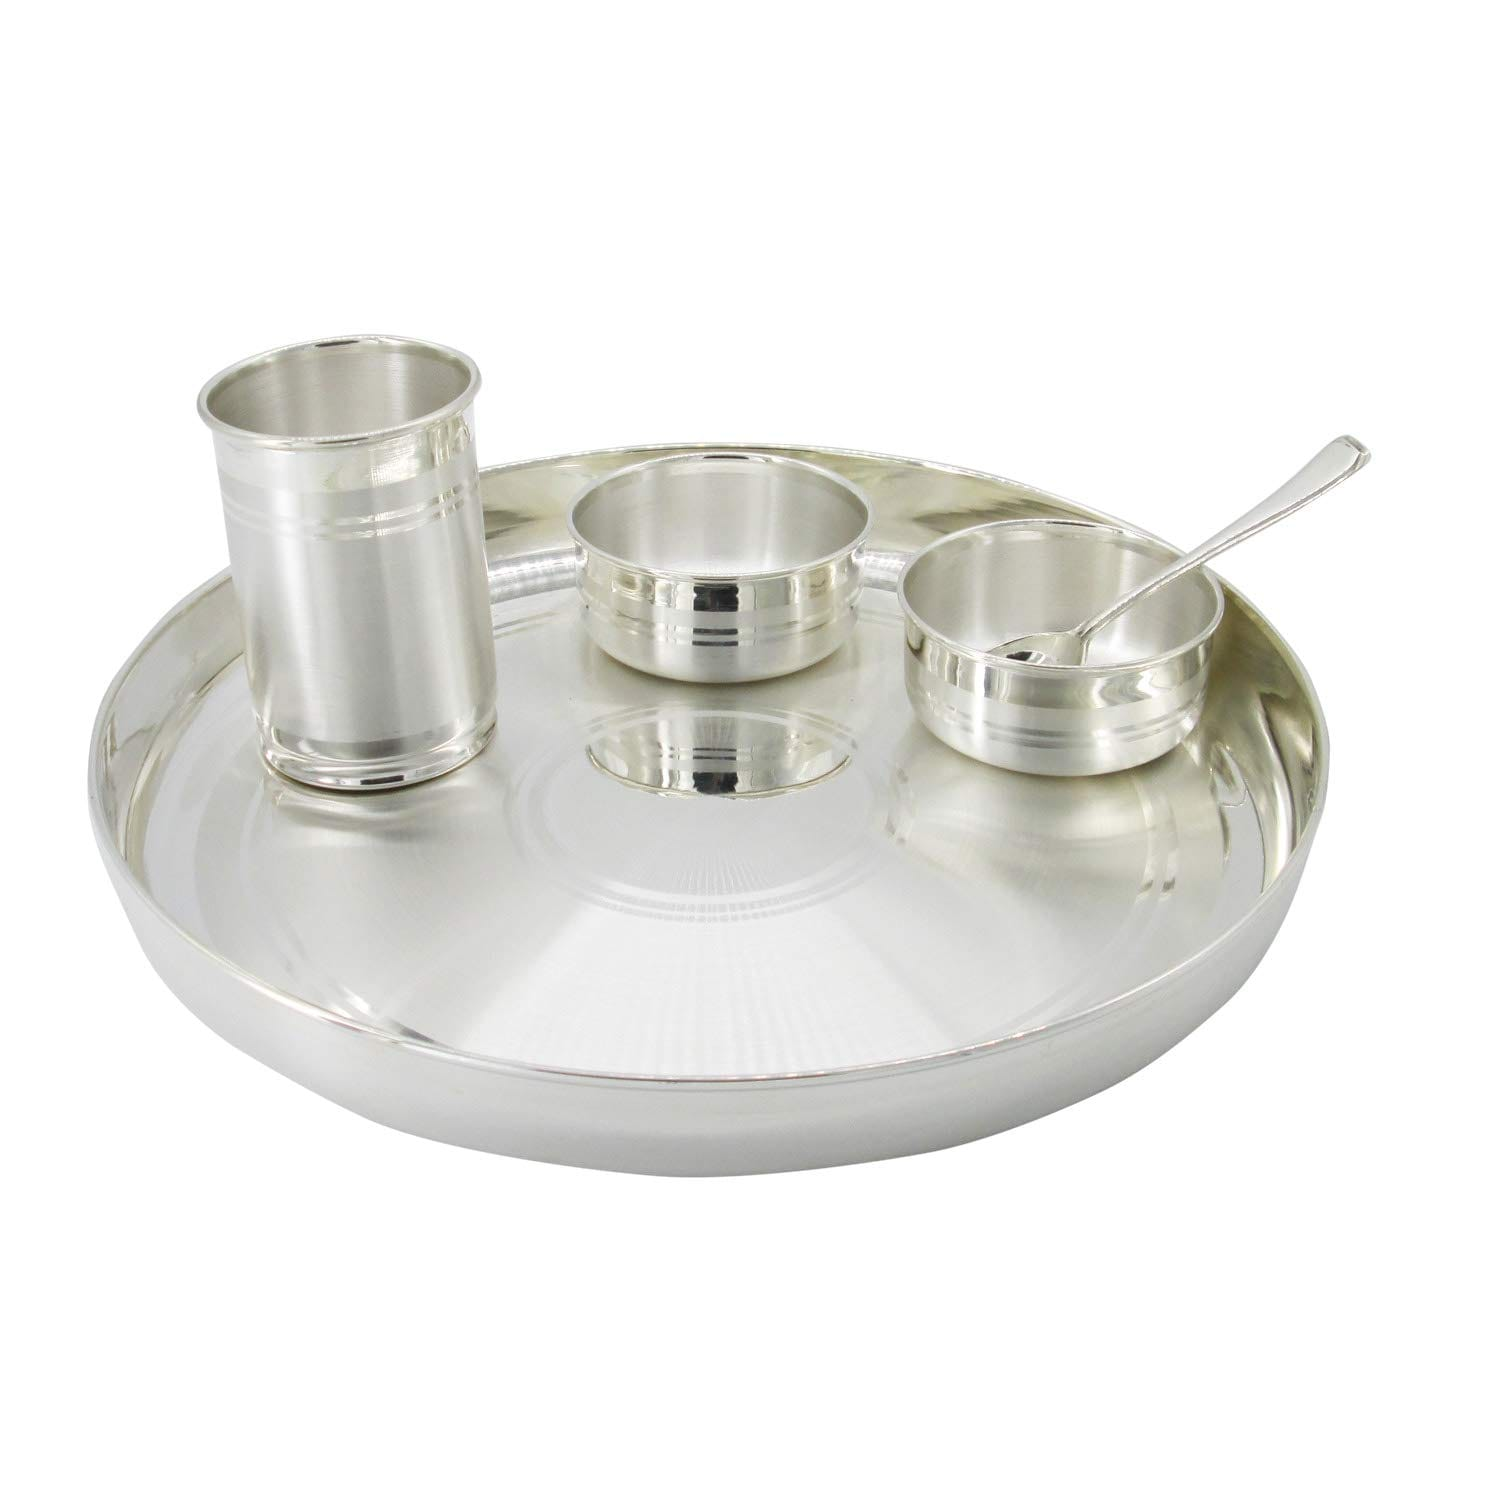 Dinner Set (1 Thali, 2 Bowls, 1 Glass & 1 Spoon With 97% Purity) (550)